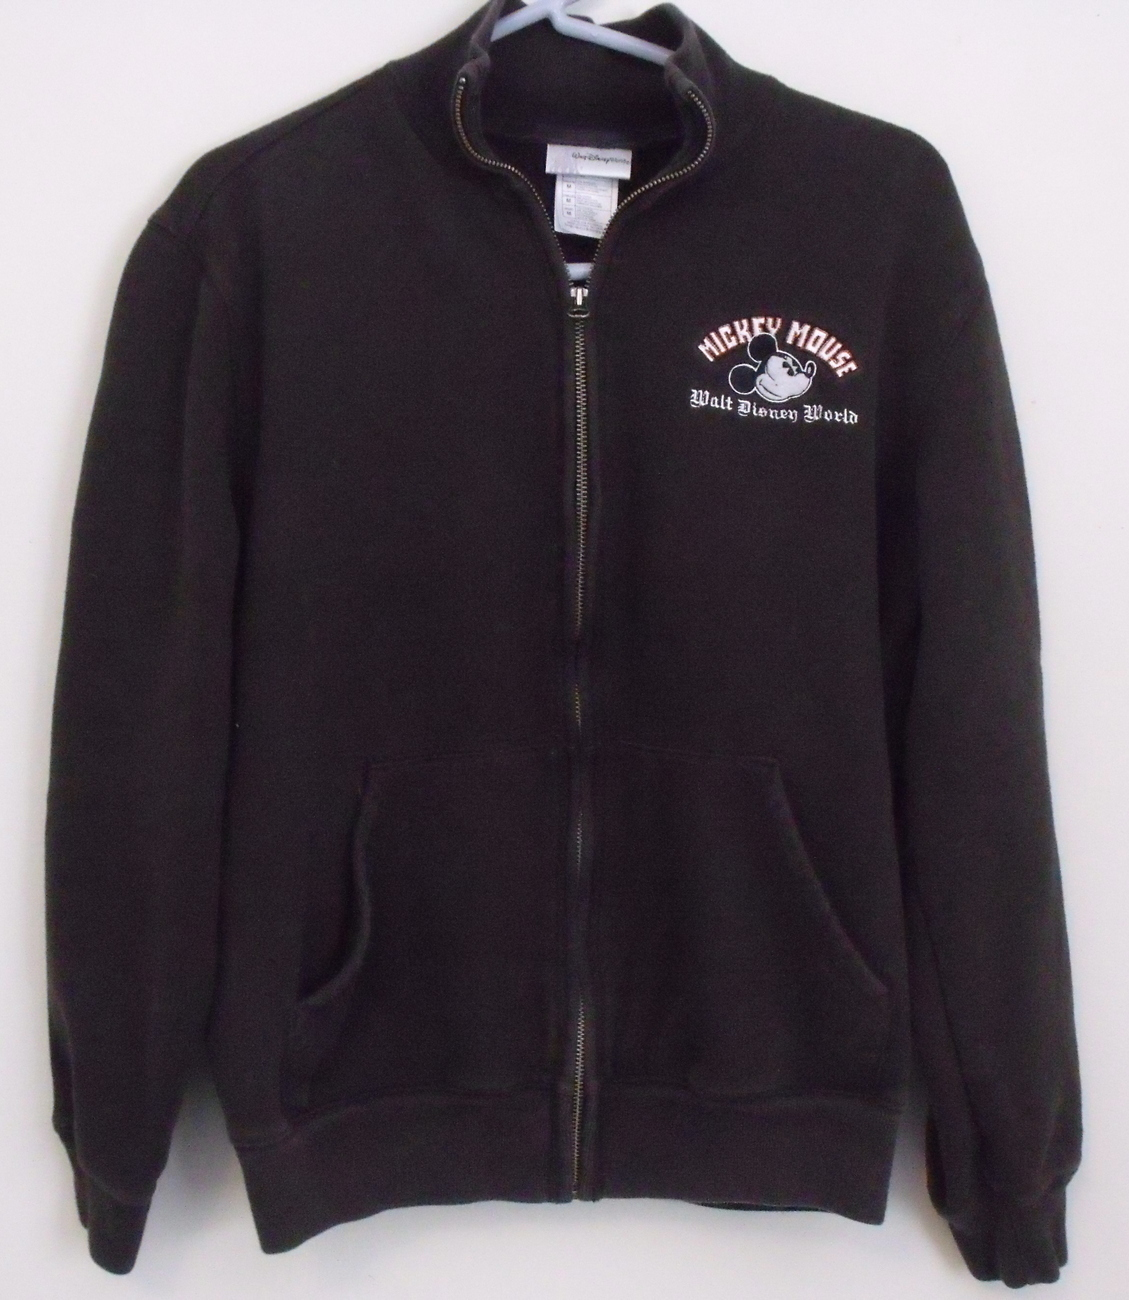 Womens Walt Disney World Brown Full Zip Sweatshirt Size